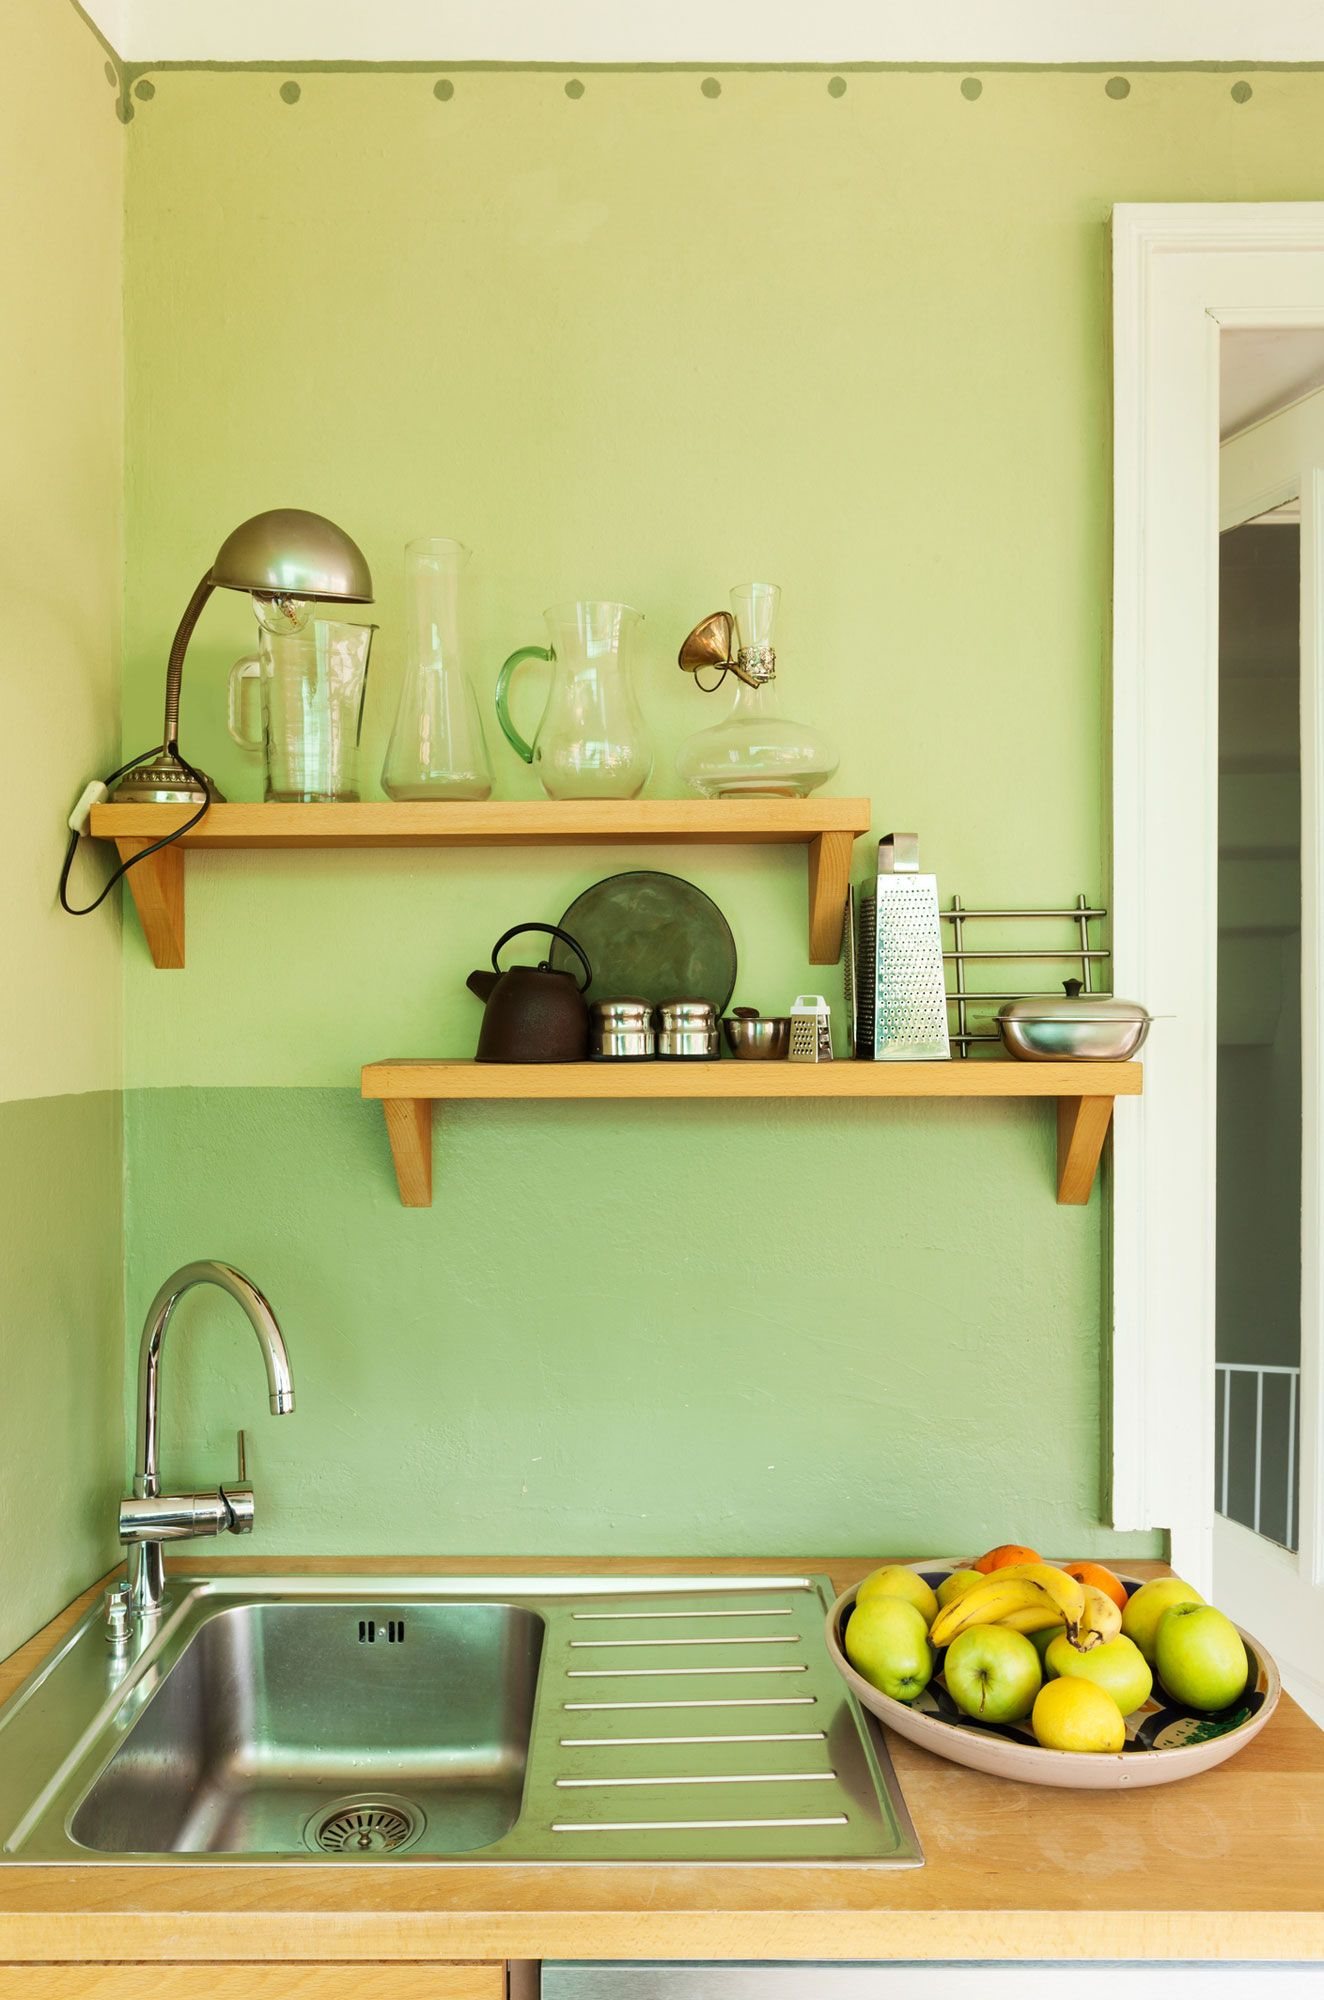 Decorar una cocina en color verde hogarmania for Decorar una cocina alargada